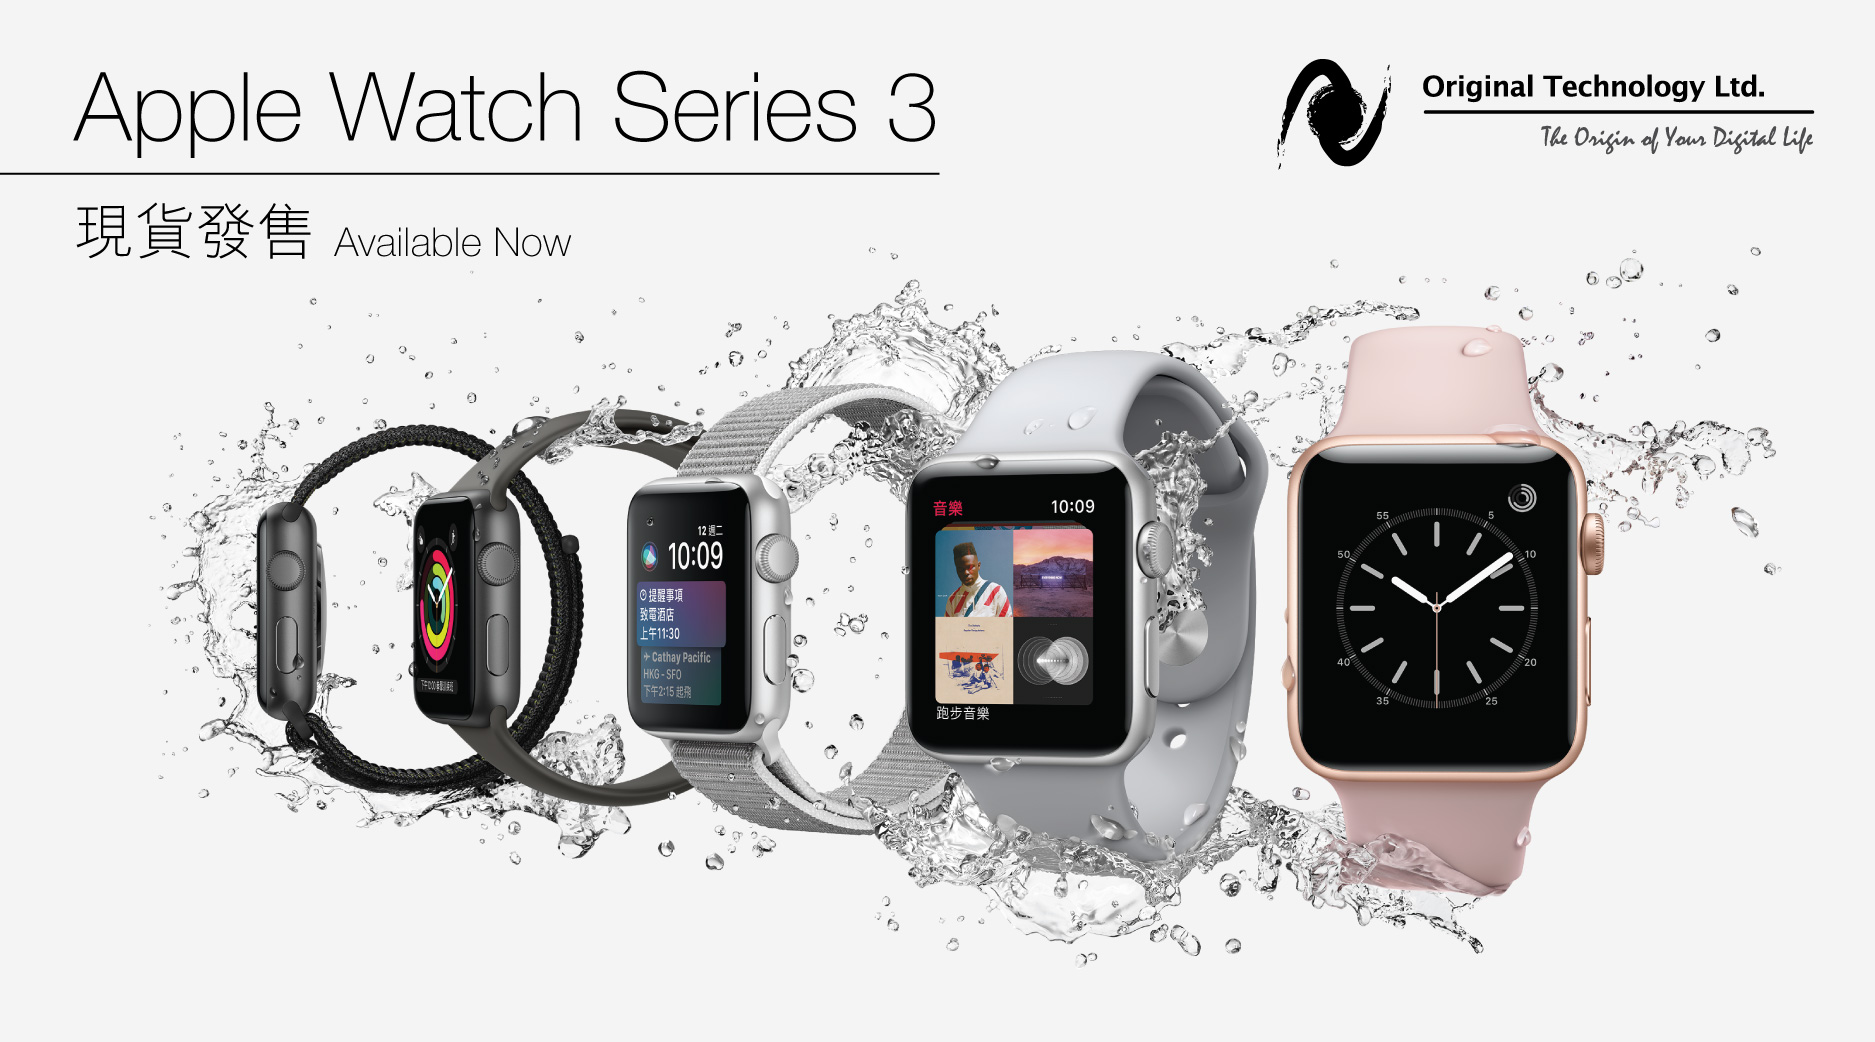 NA05_Apple_Watch_3_900x500_01-01.jpg